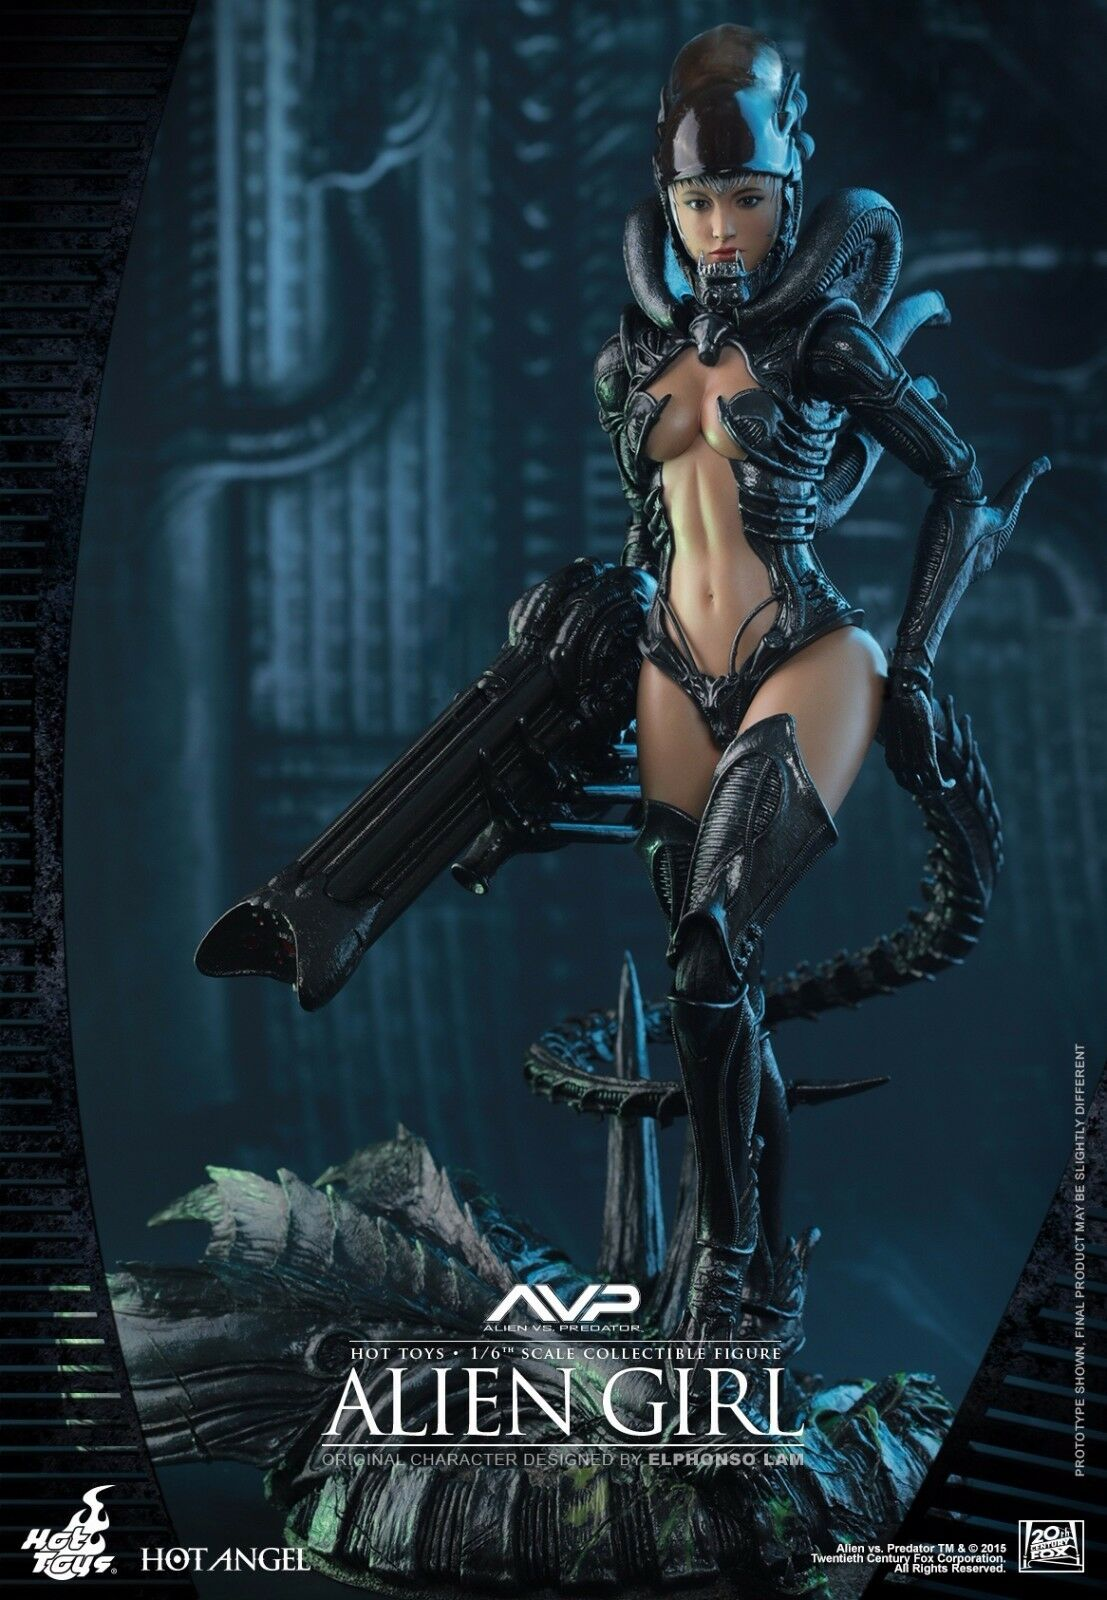 HOT TOYS HAS002 AVP Alien Girl 1/6 Figure